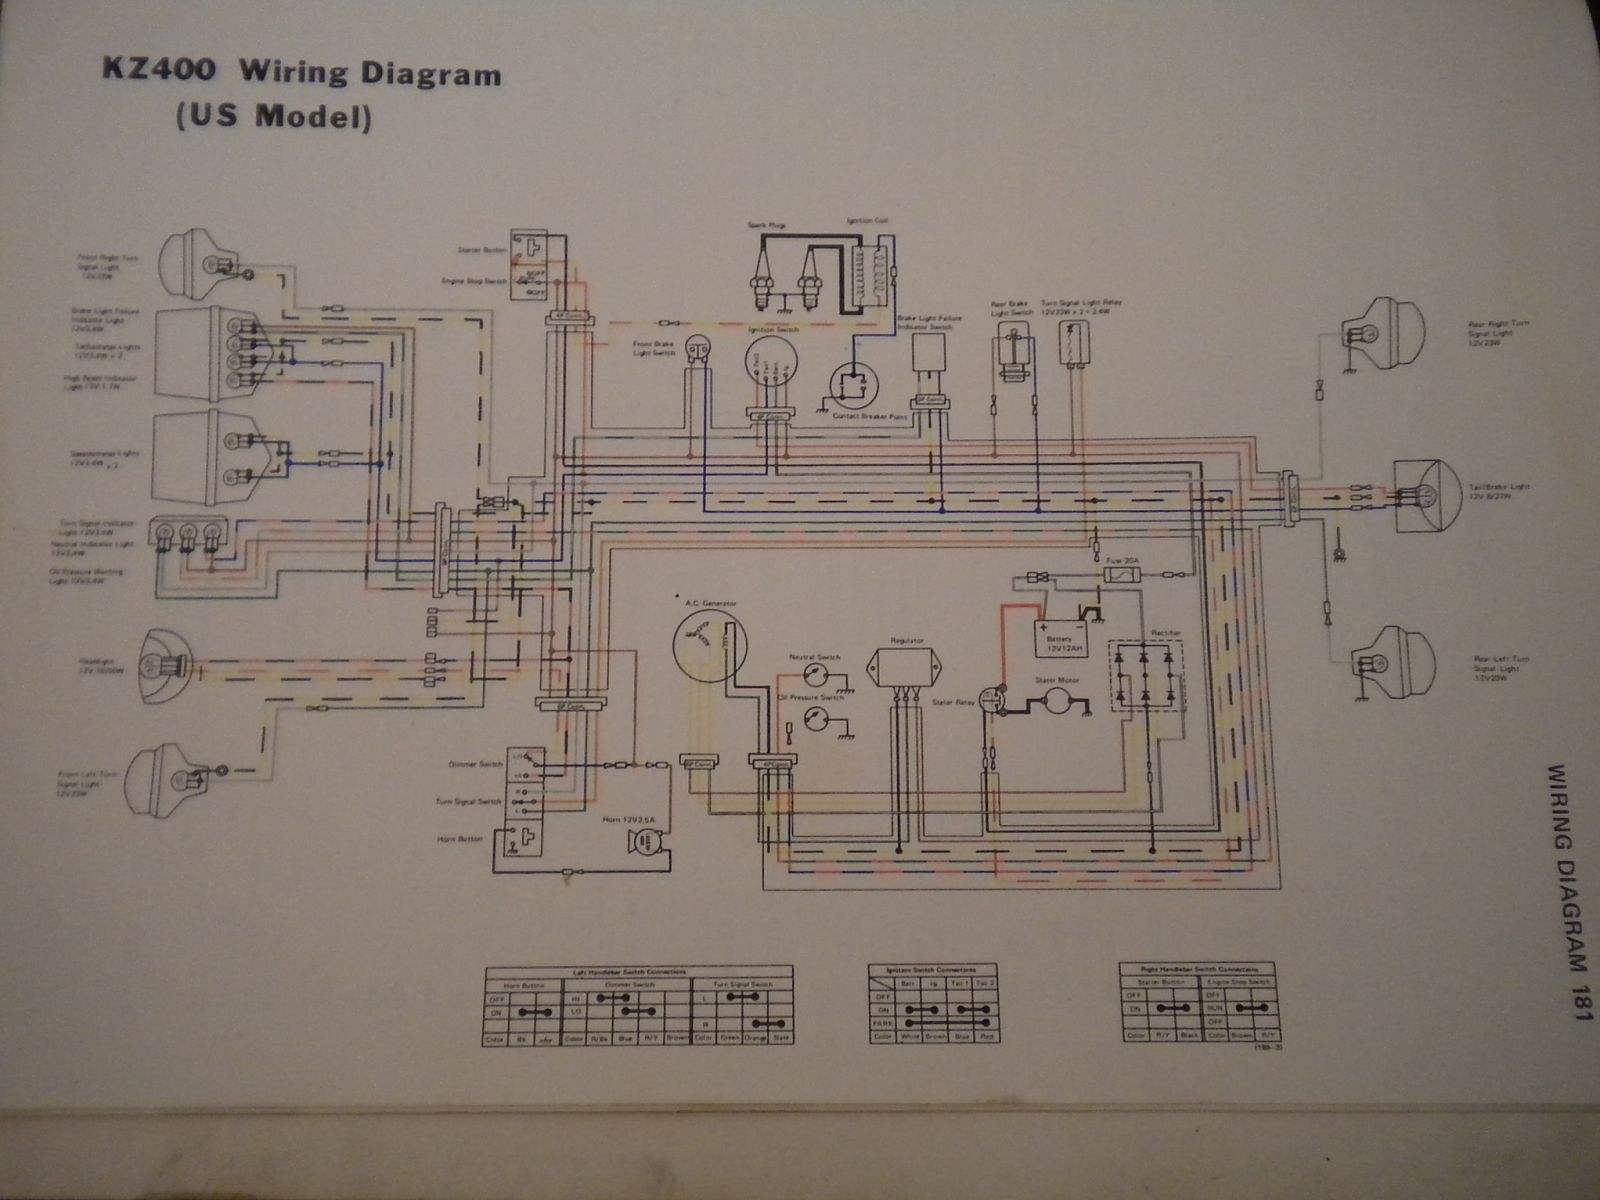 Honda cb350 wiring diagram simple 15 T-Bucket Wiring-Diagram Honda CB350 Headlight Honda Rebel 250 Wiring Diagram